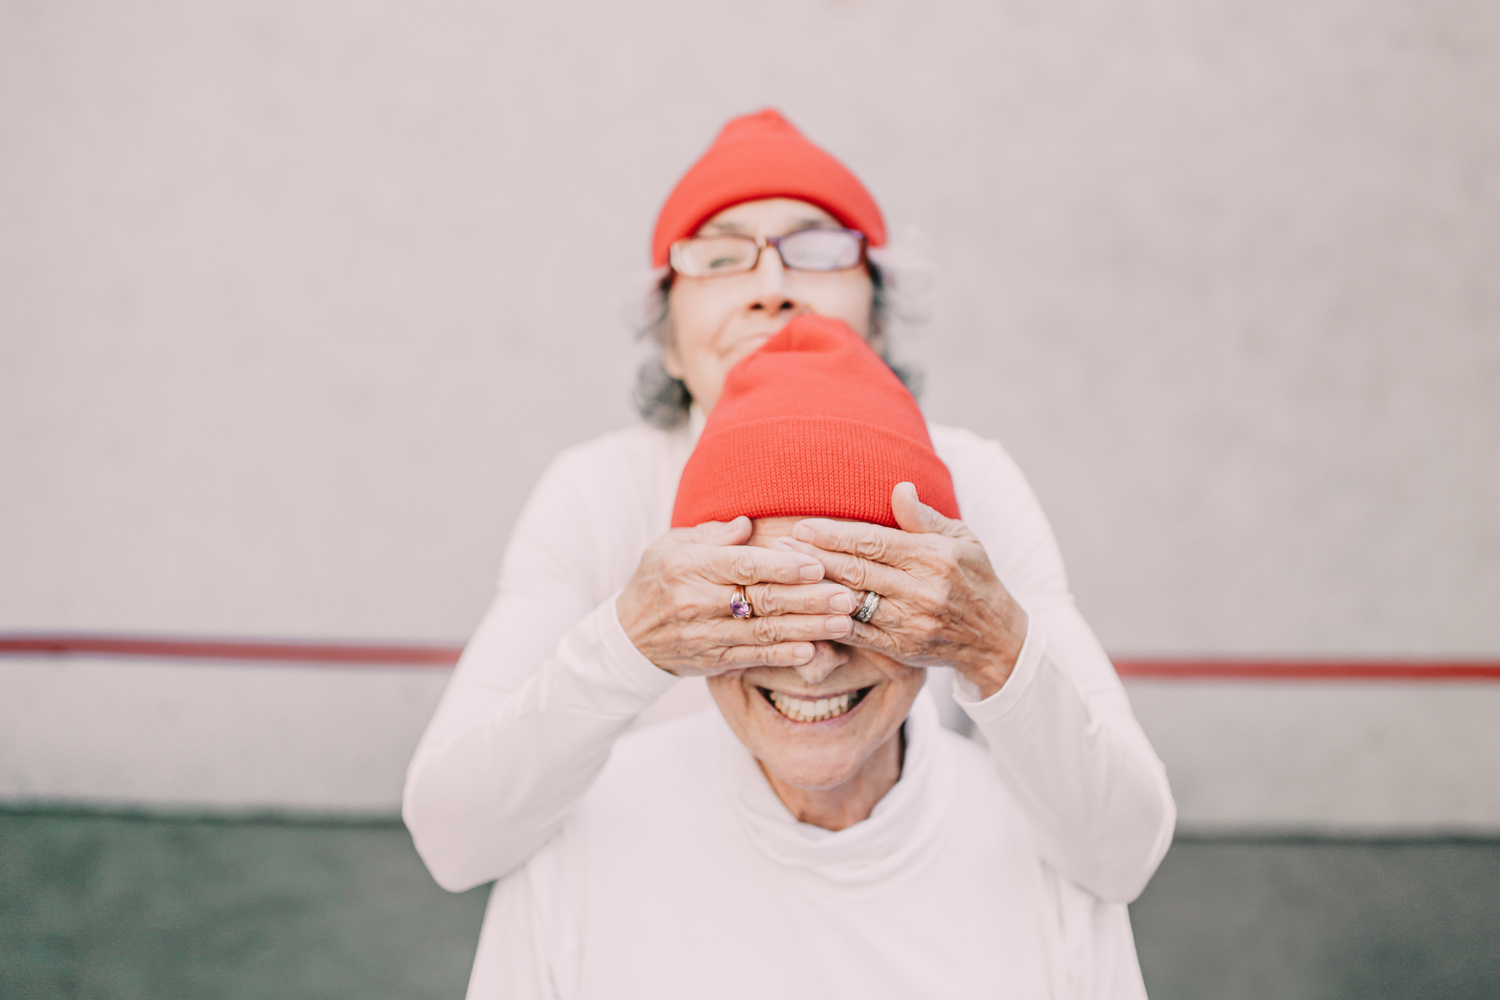 An elderly woman covering friend's face with her hands.